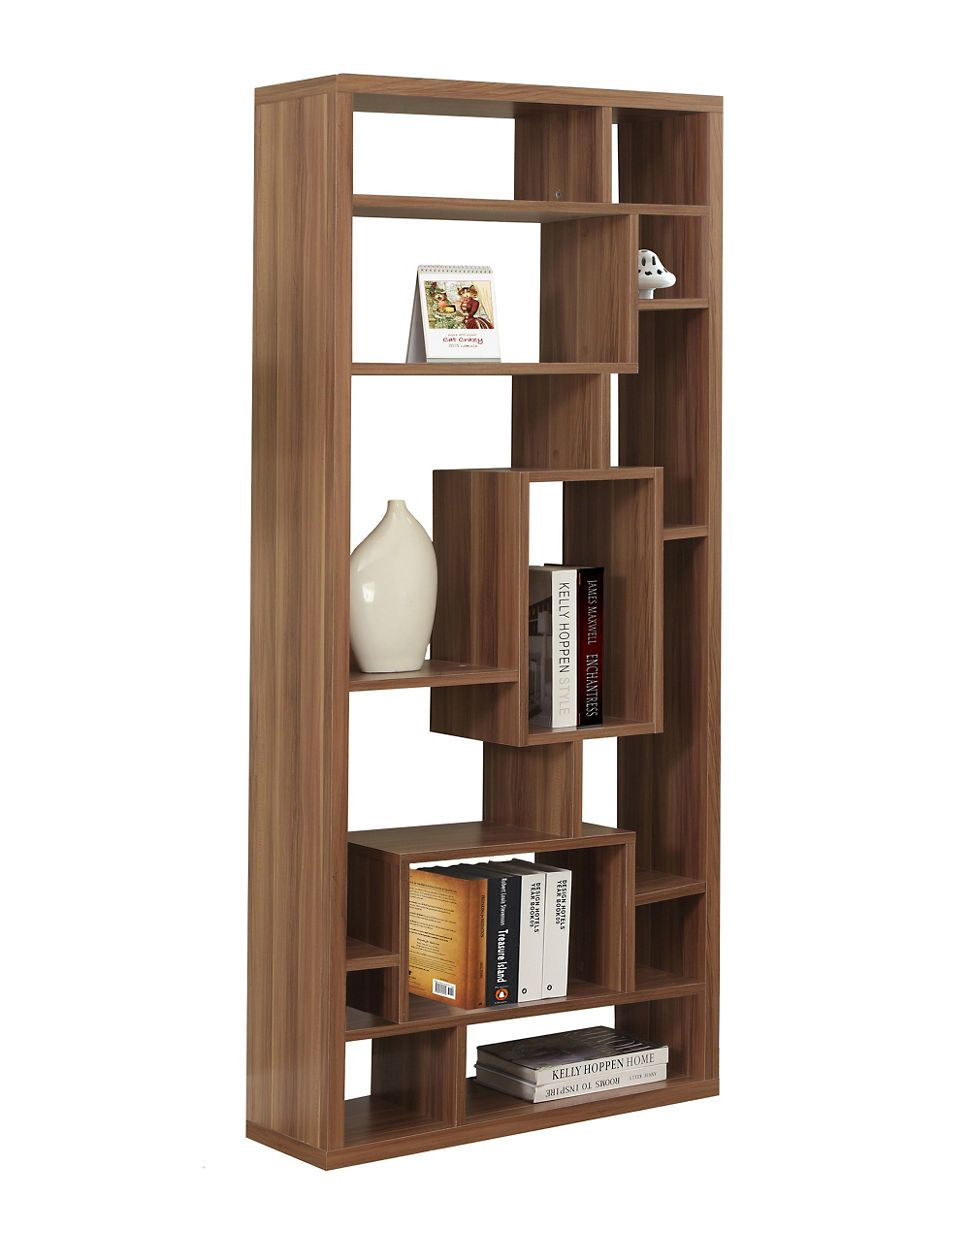 Backless Bookshelves Backless Bookcase | Hudsonu0027s Bay